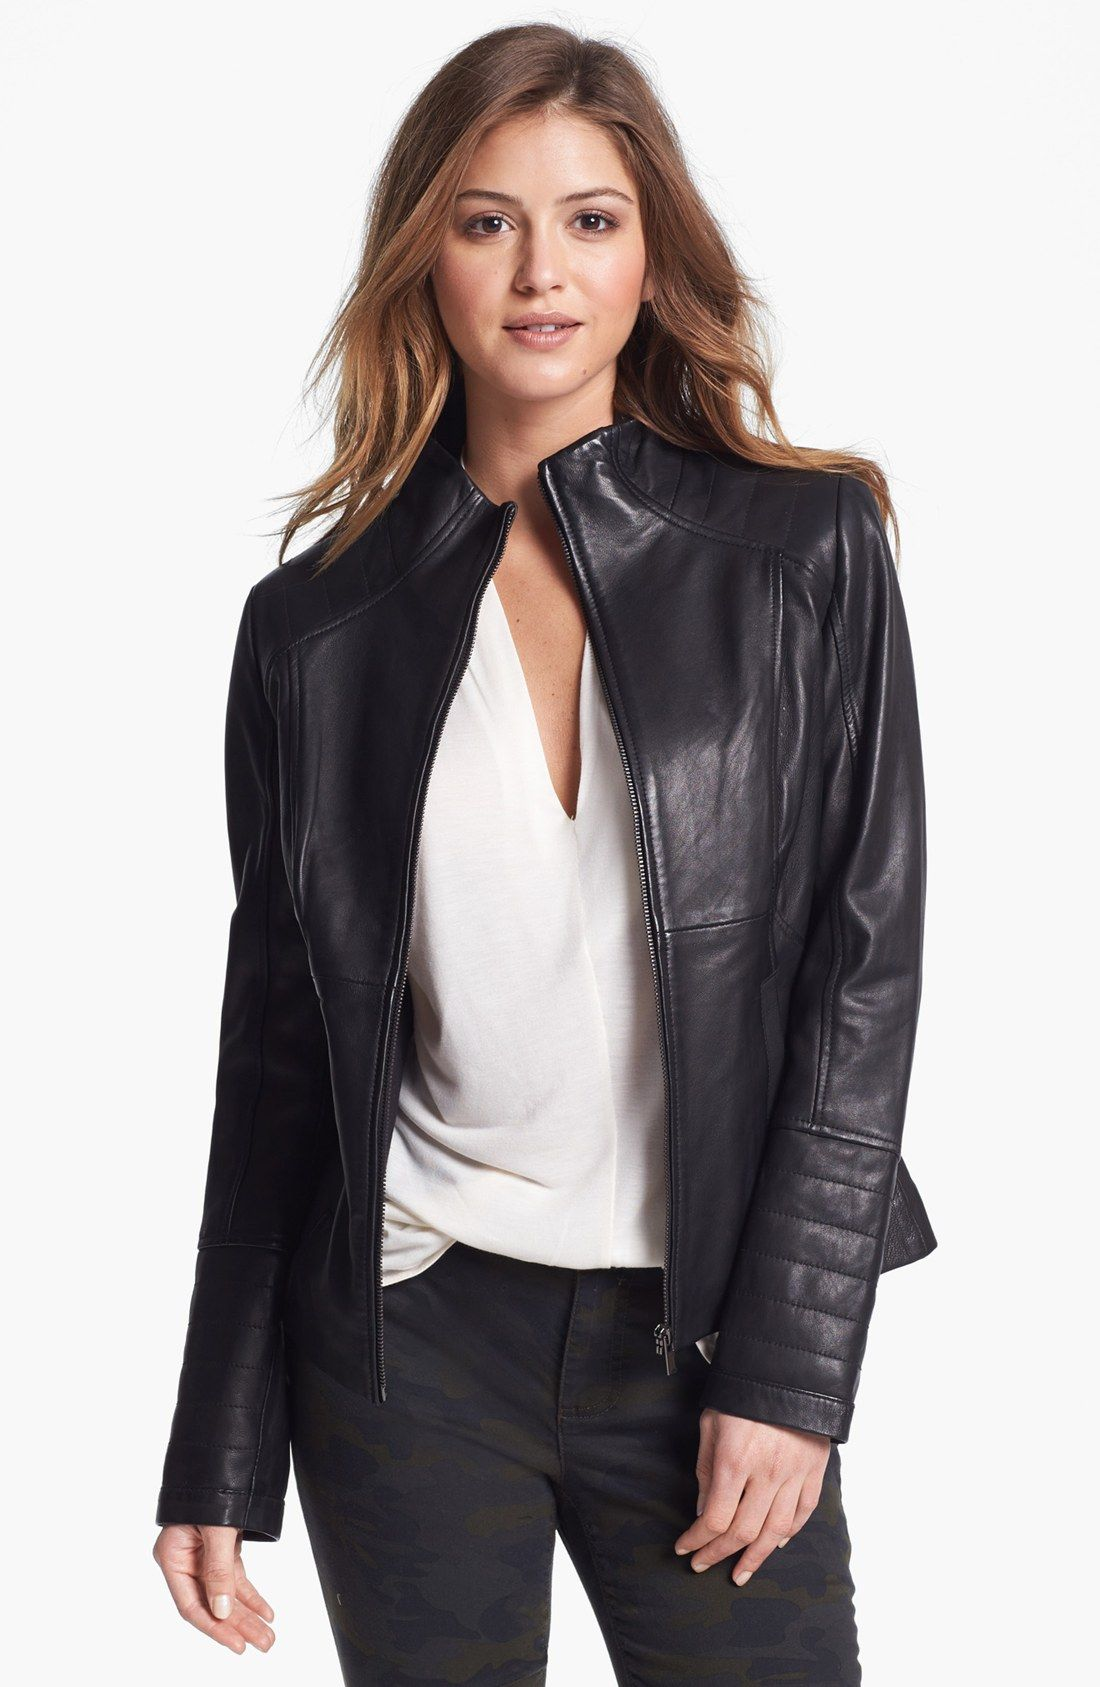 buy women's sexy leather jackets, black / brown in usa, uk online ...